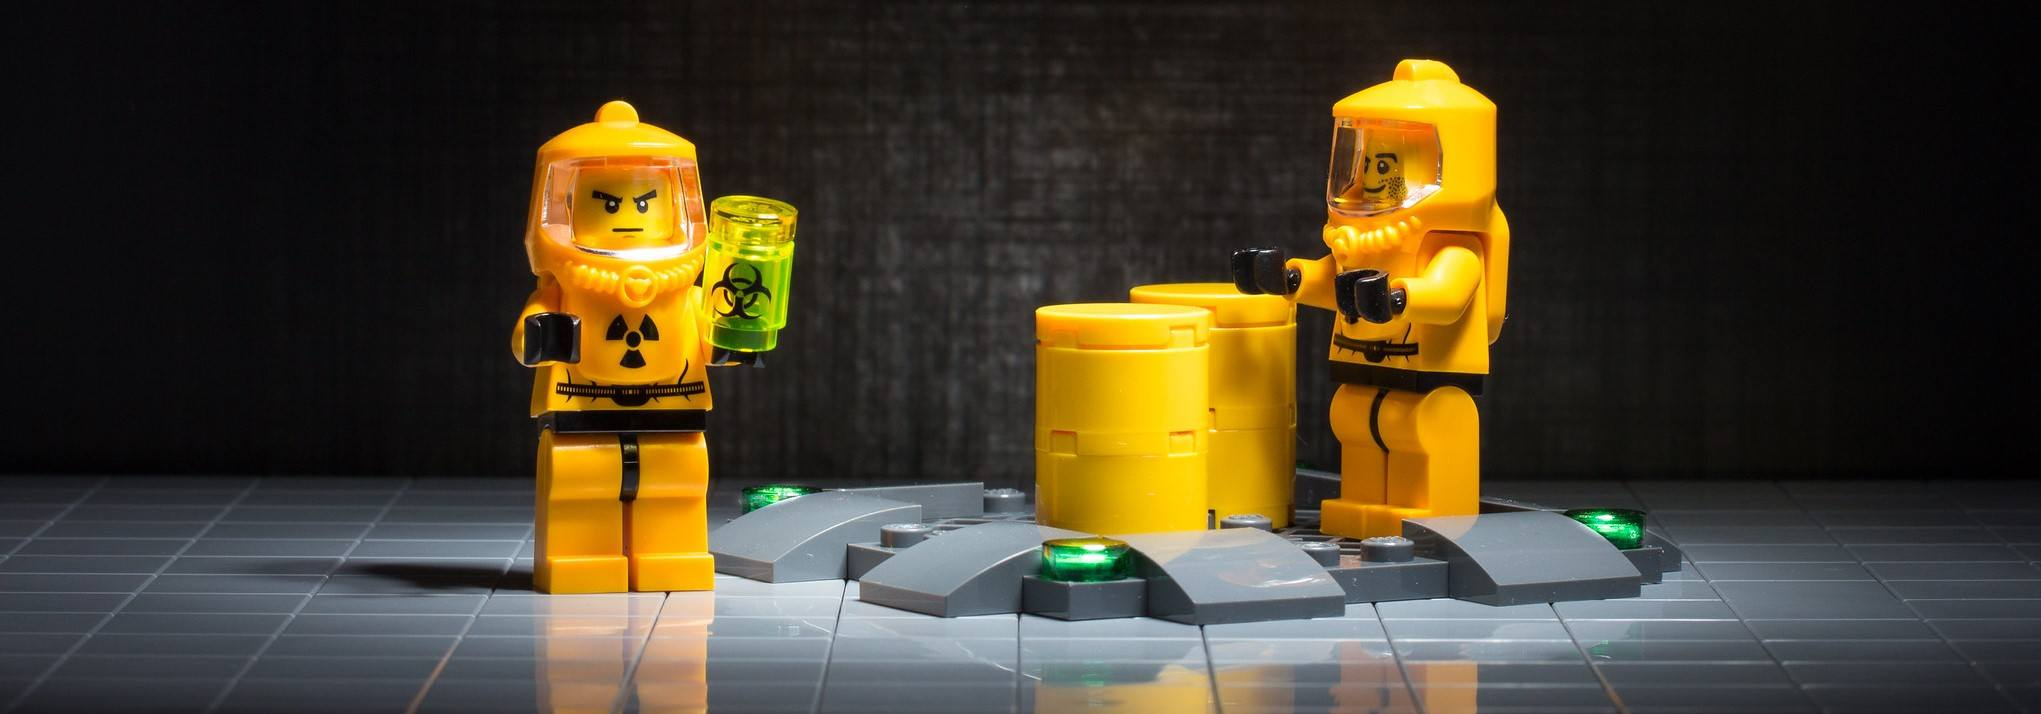 A photo of LEGOs in Hazmat suits, which could be a little over the top for the gym.